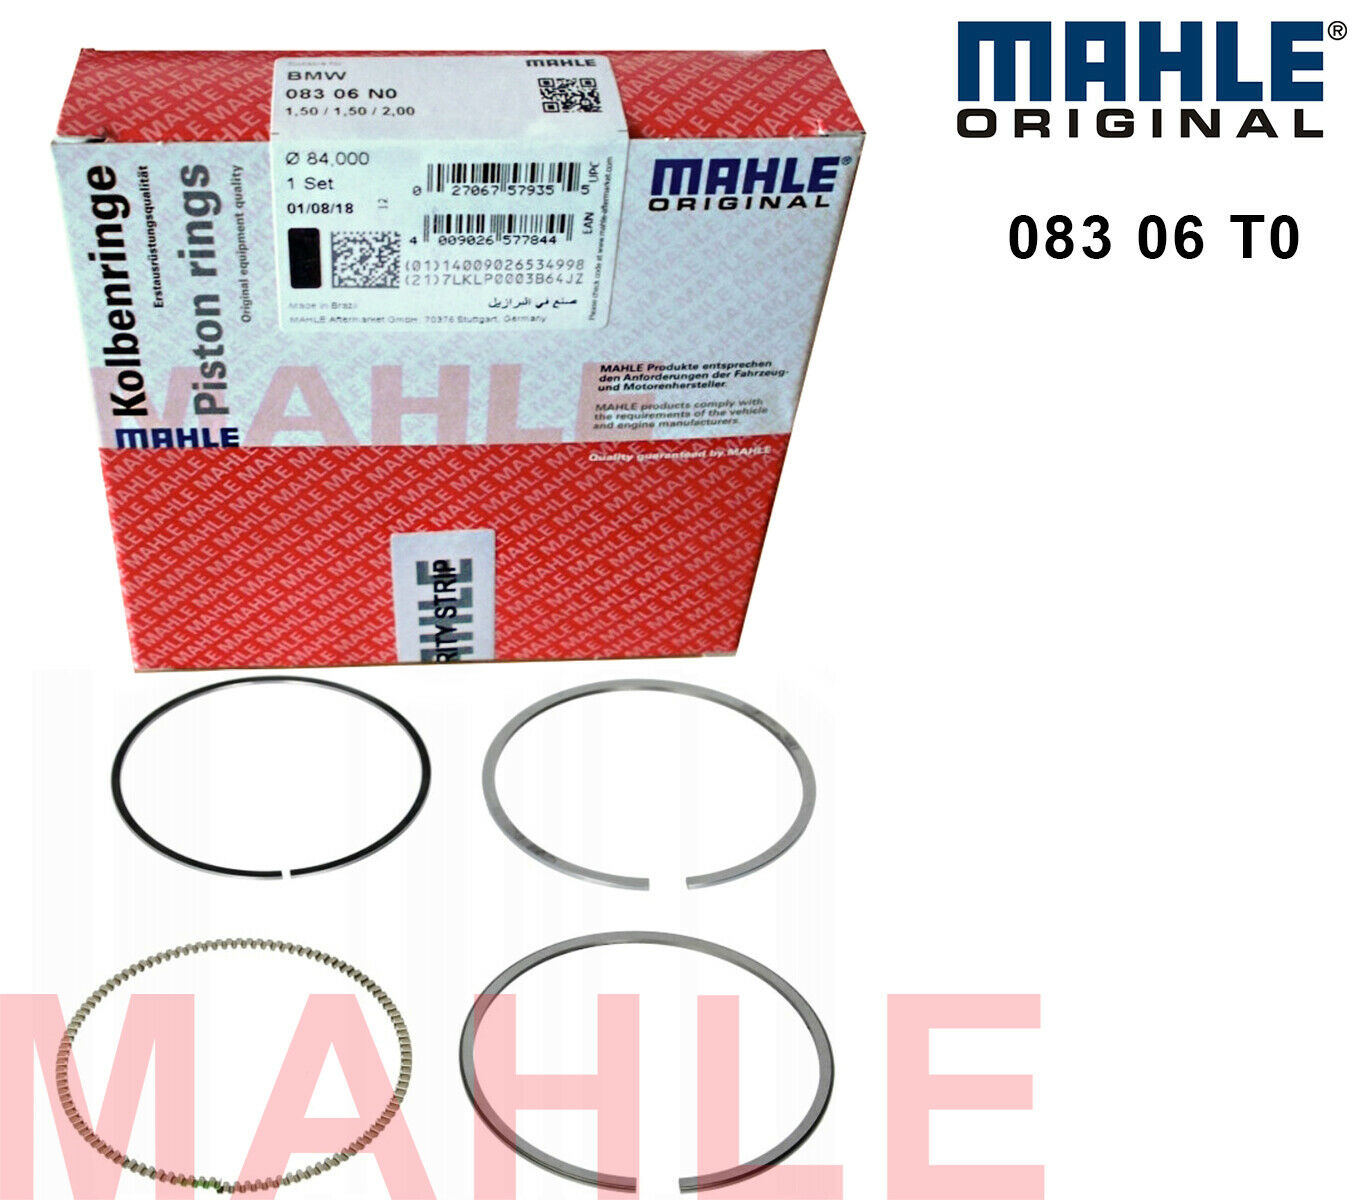 Mahle Original 083 21 N0 Piston Ring Set